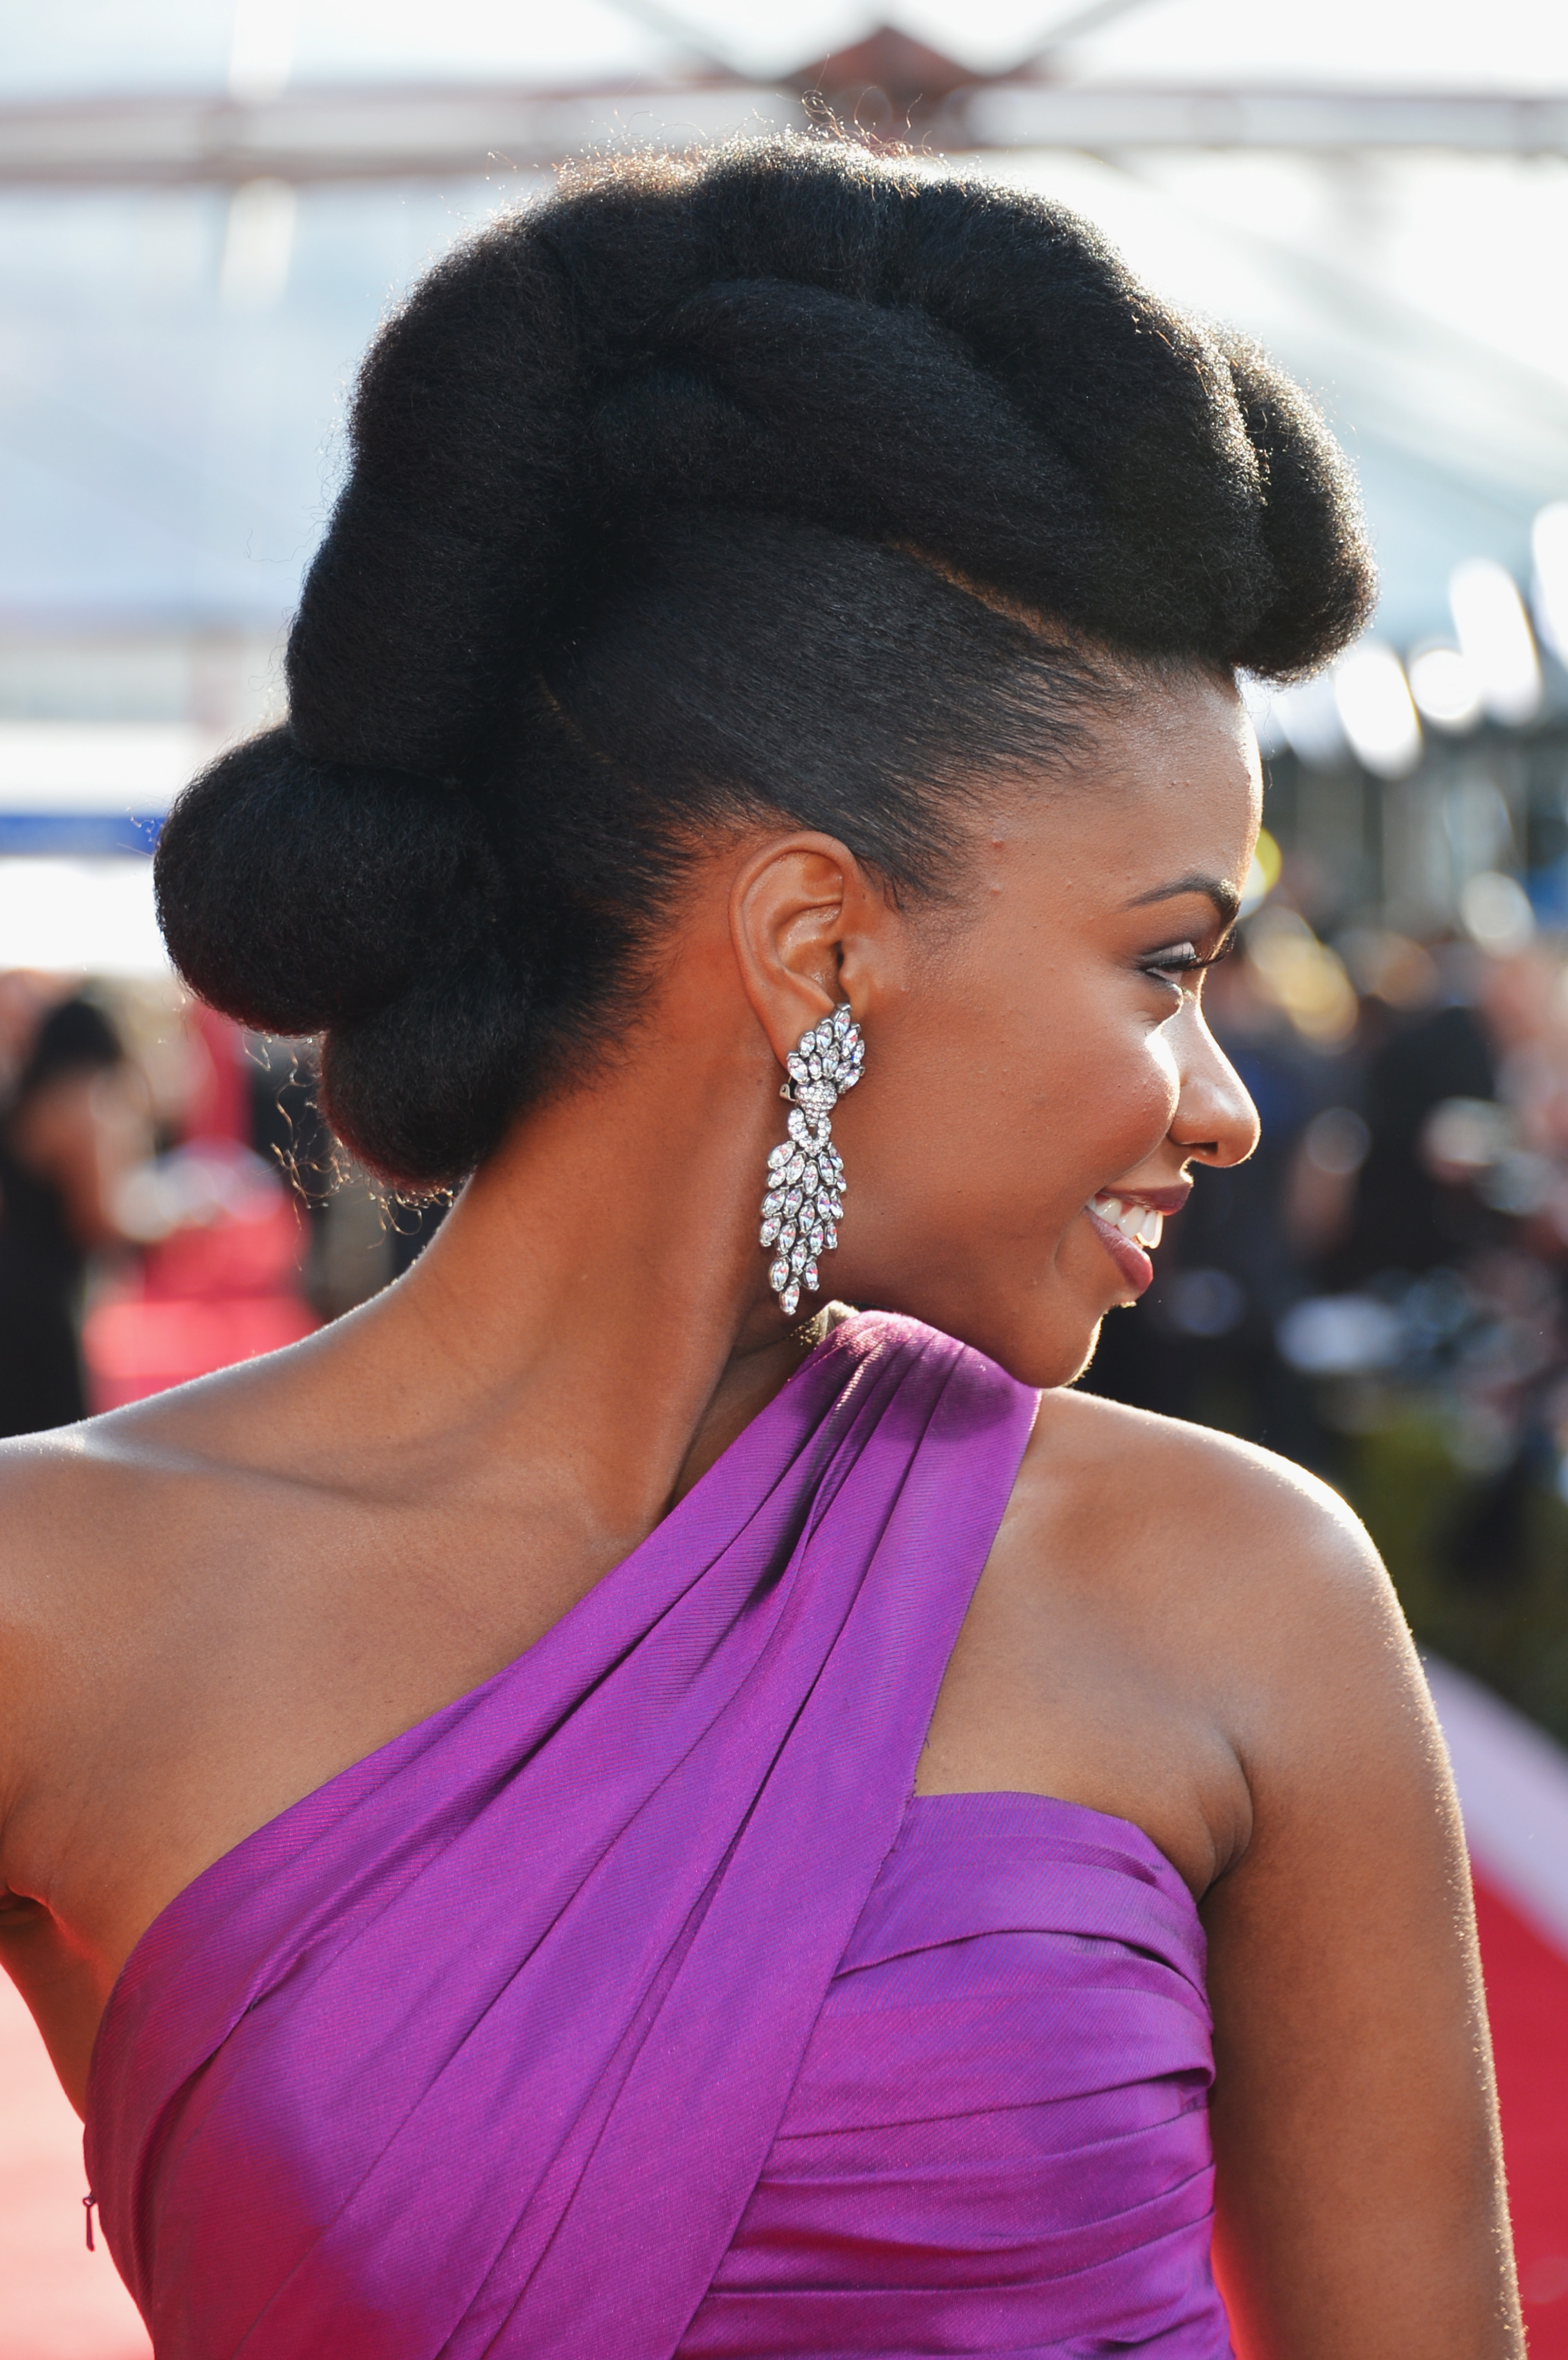 10 Easy Natural Hairstyles For Black Women Ideas For Short